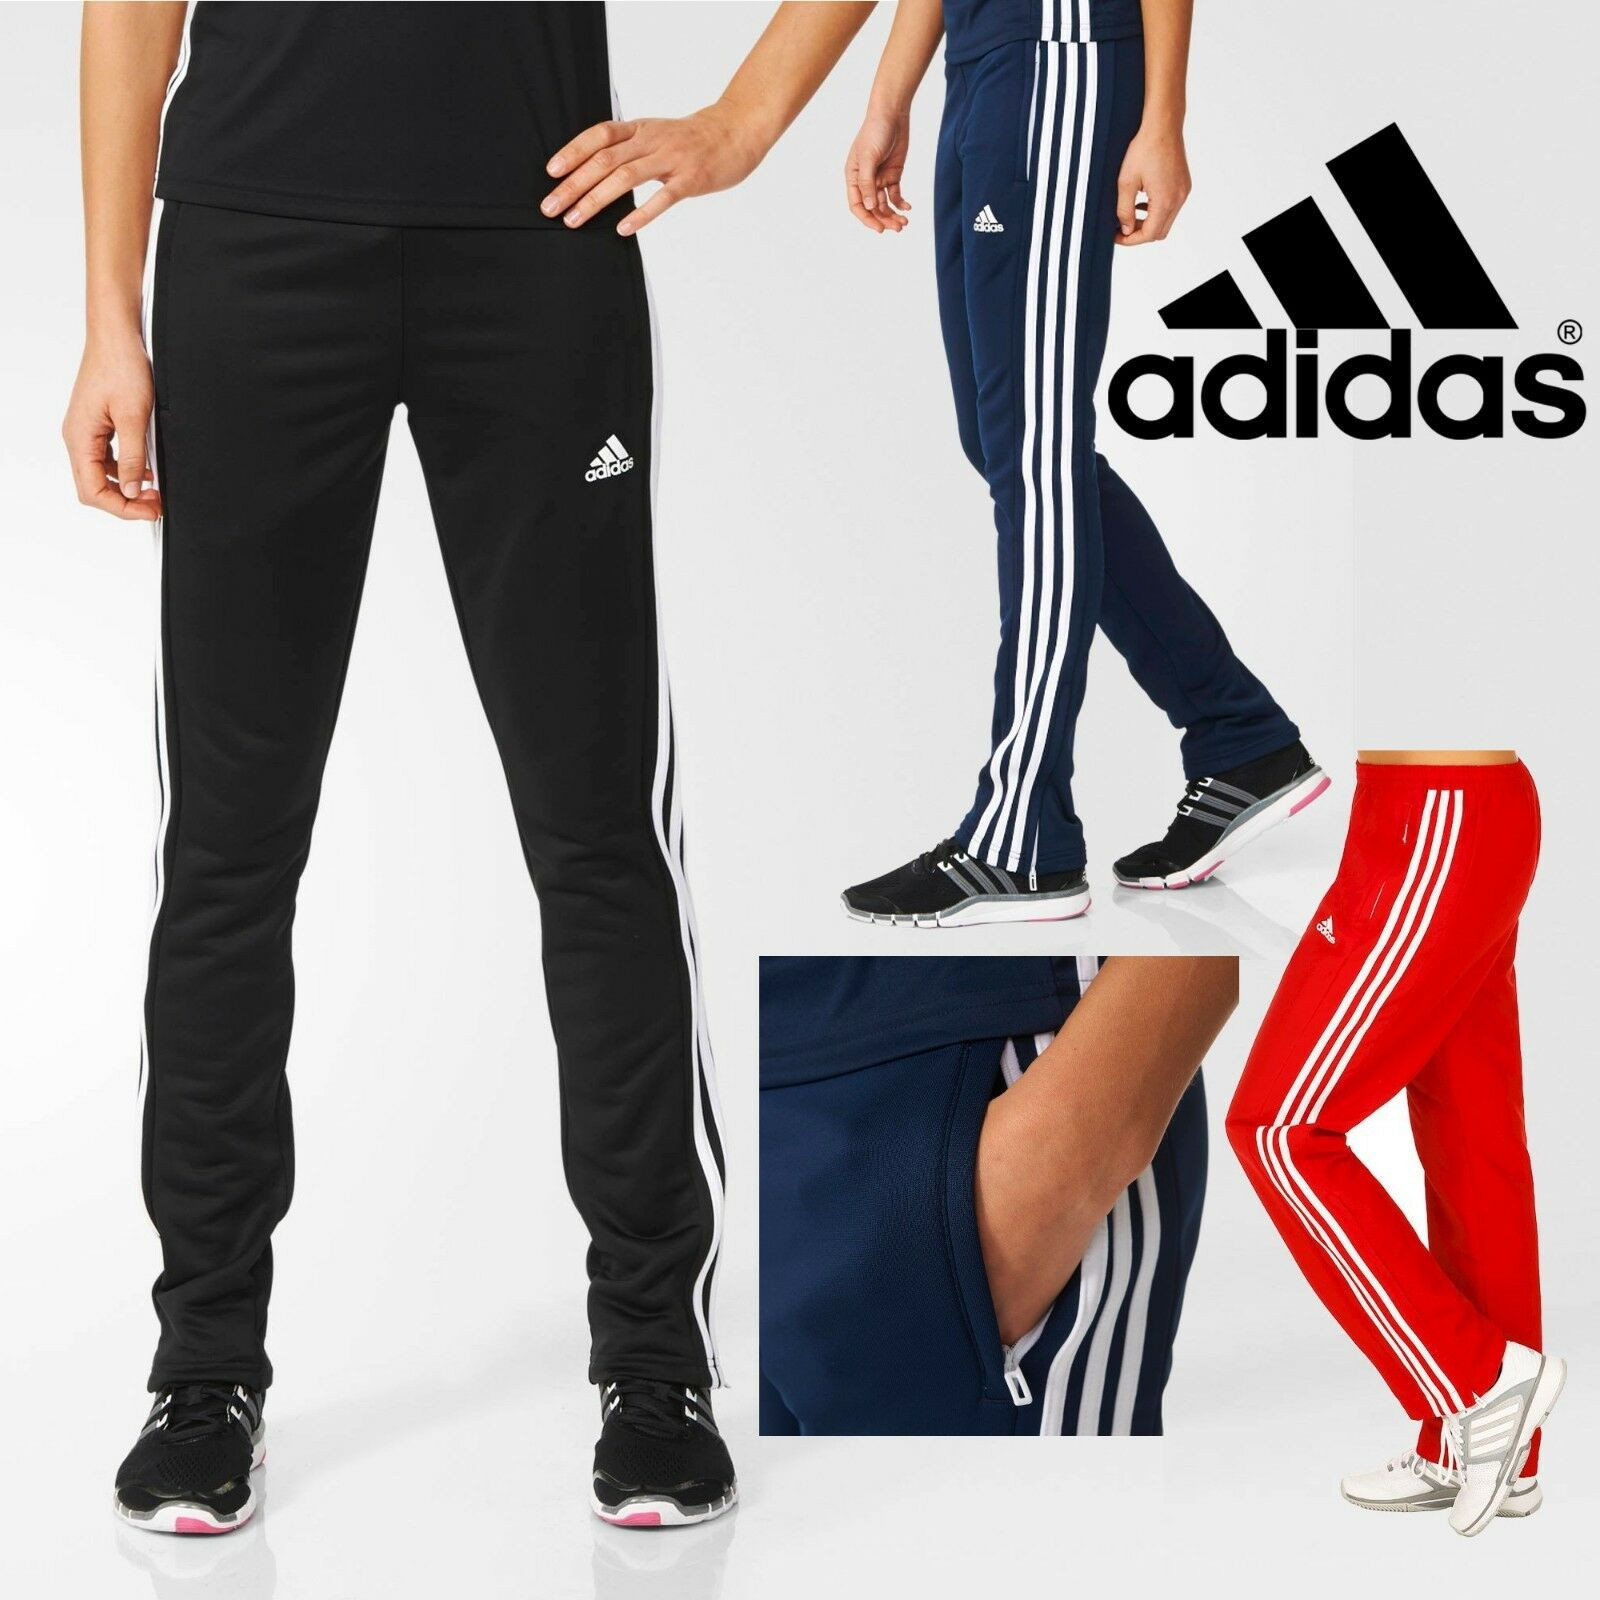 40373a70cbfb Details about adidas T16 CLIMALITE Sweat Pants Women s Sports Running Tracksuit  Bottoms SALE